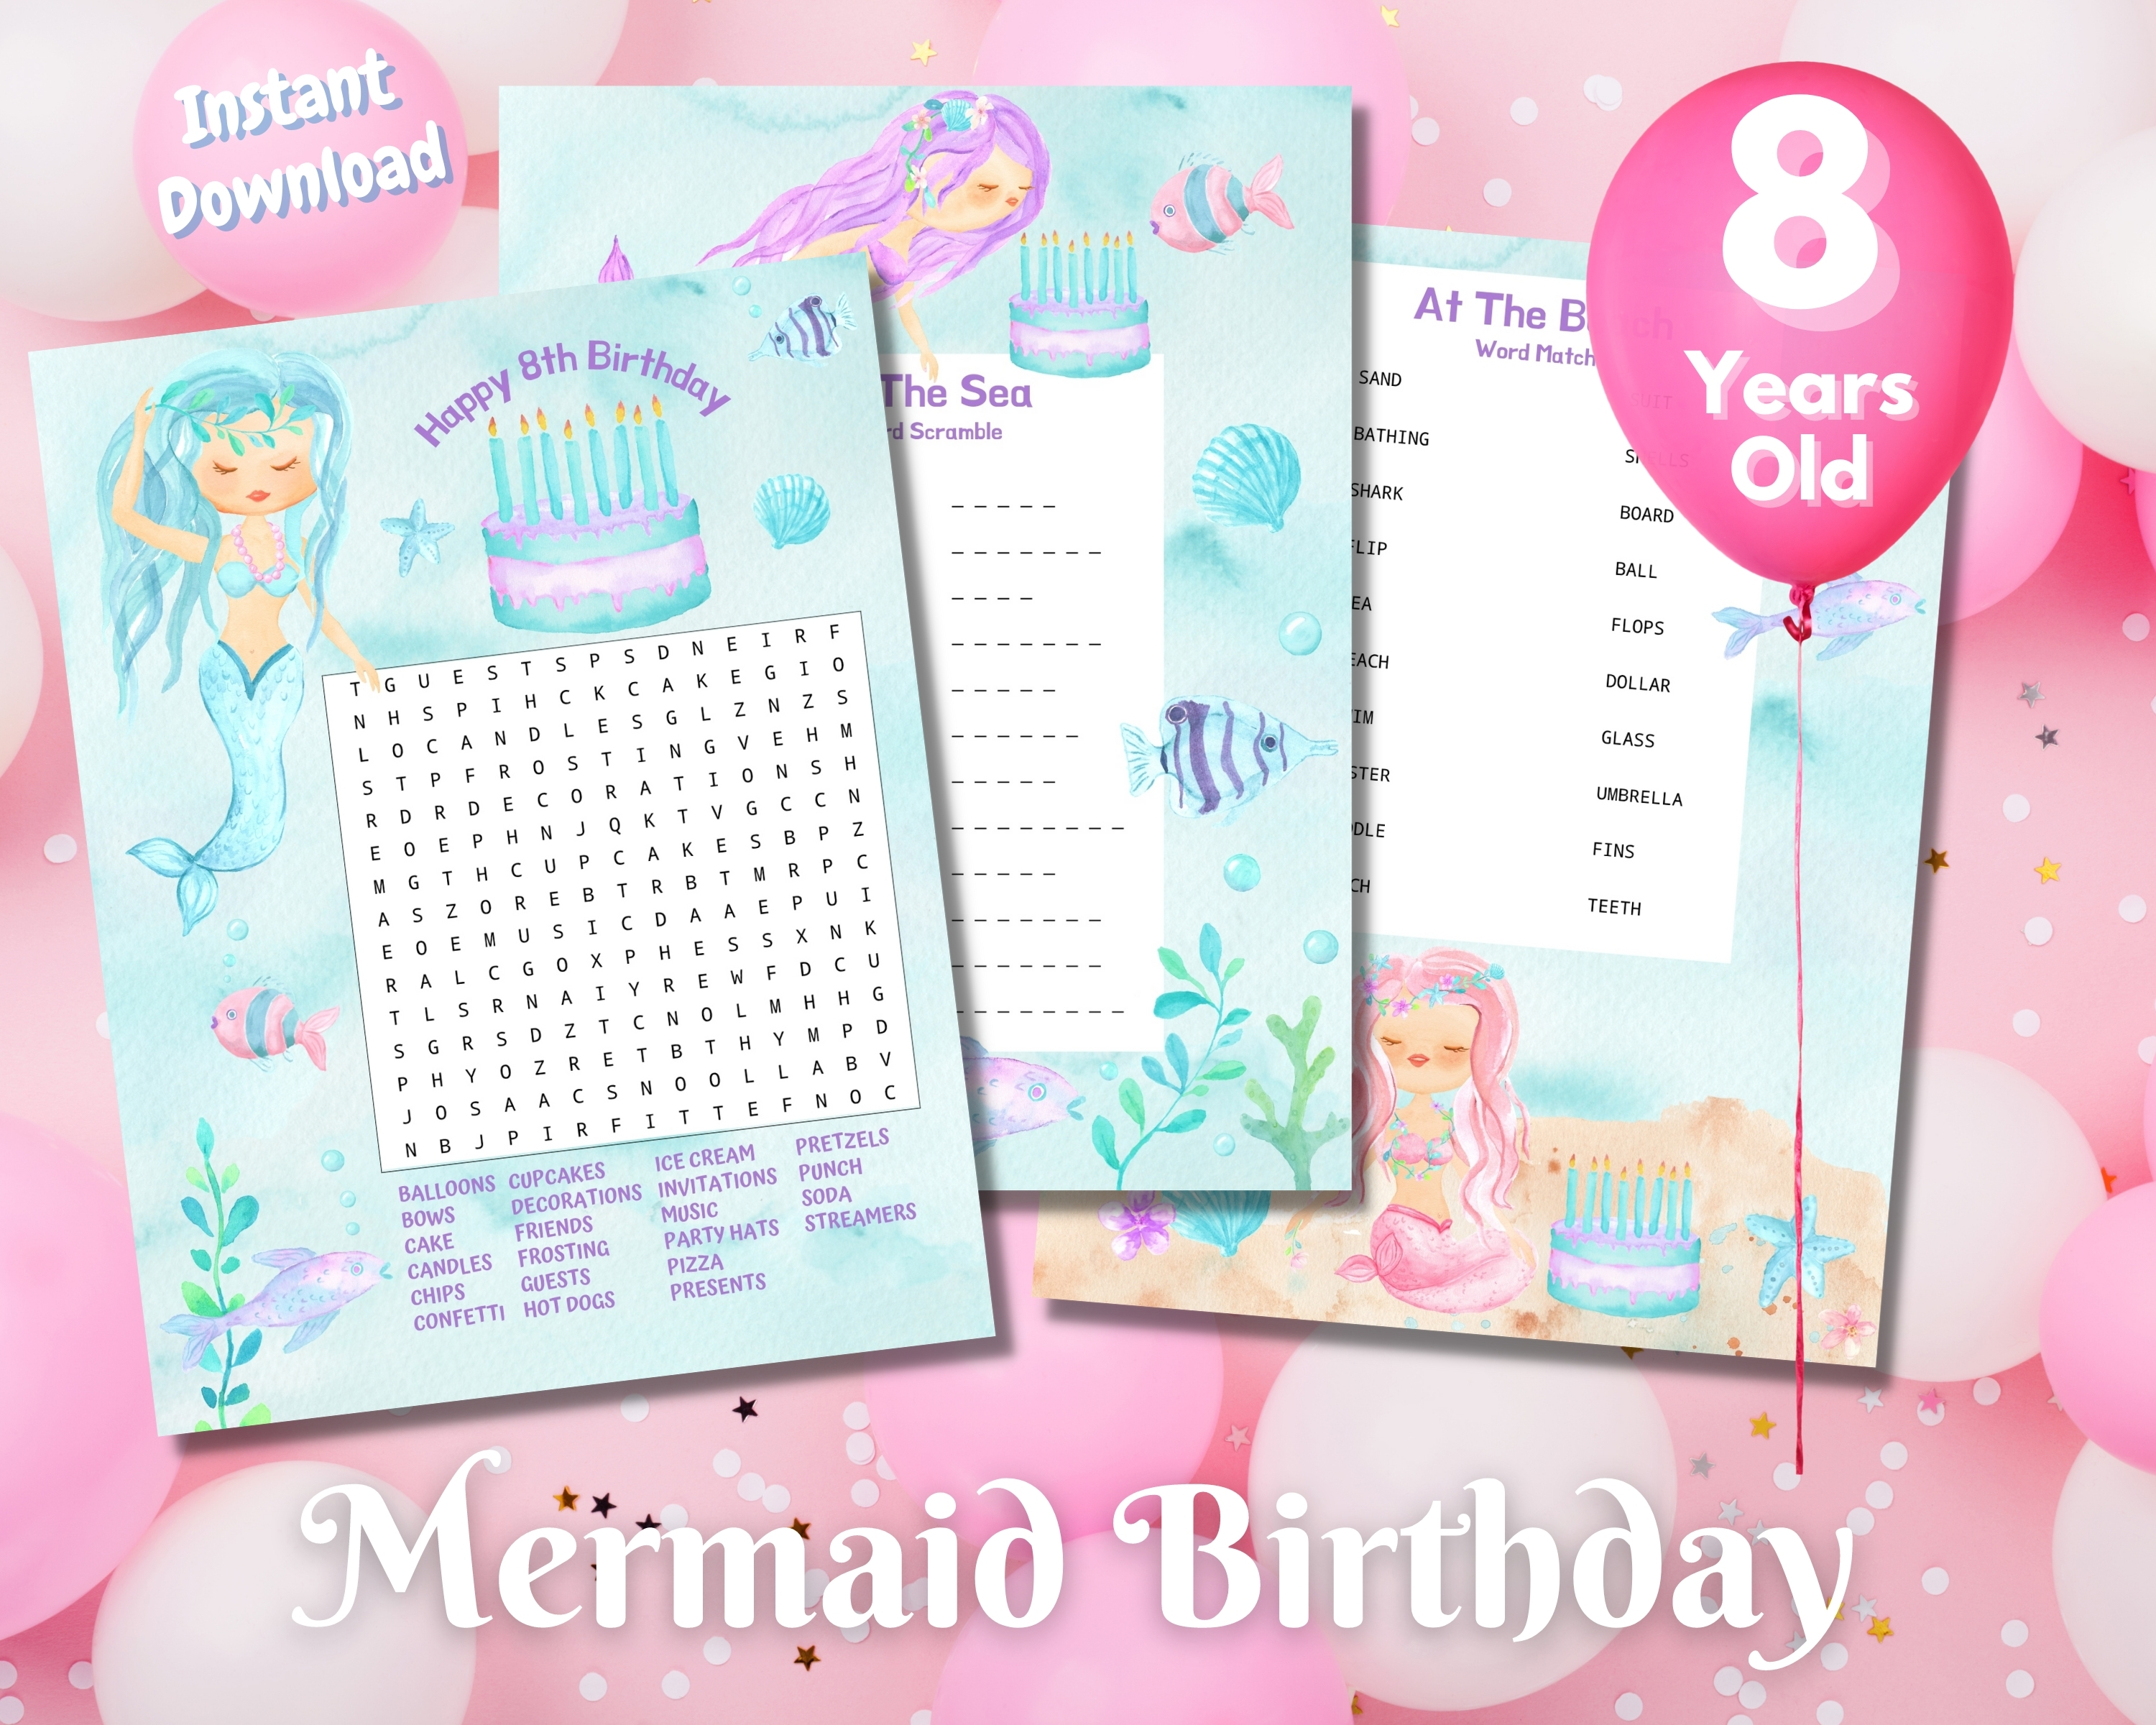 Eighth Mermaid Birthday Word Puzzles - Light Complexion